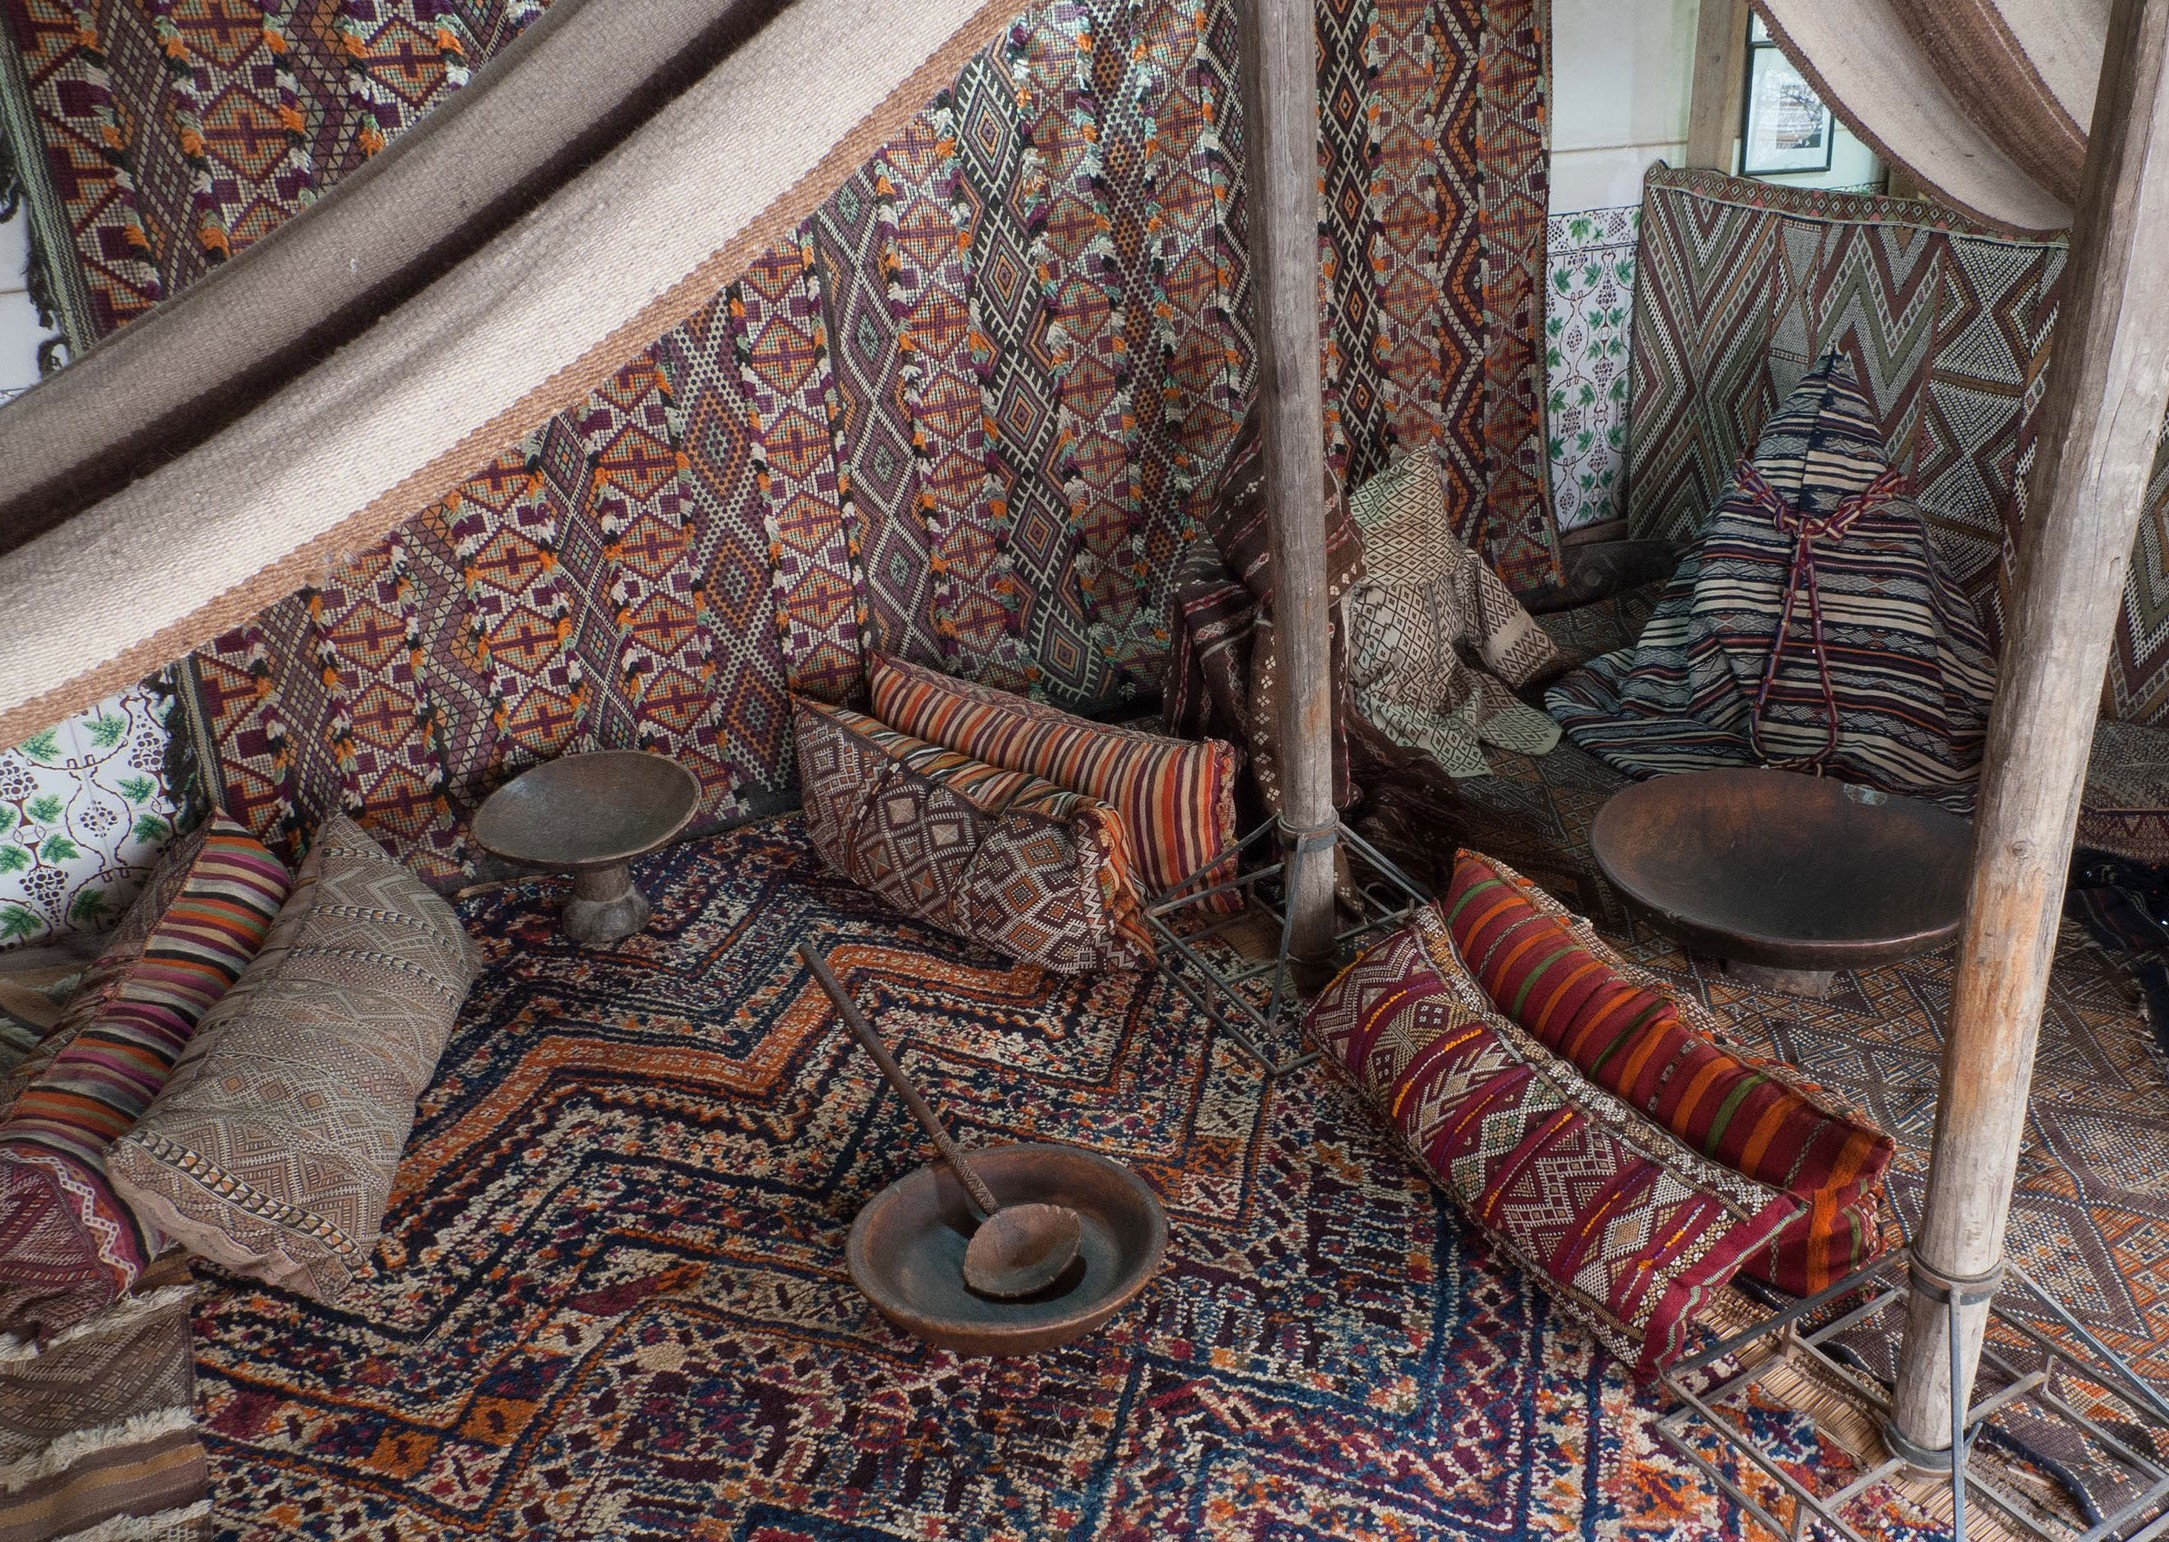 maison tiskiwin is a private museum in marrakech